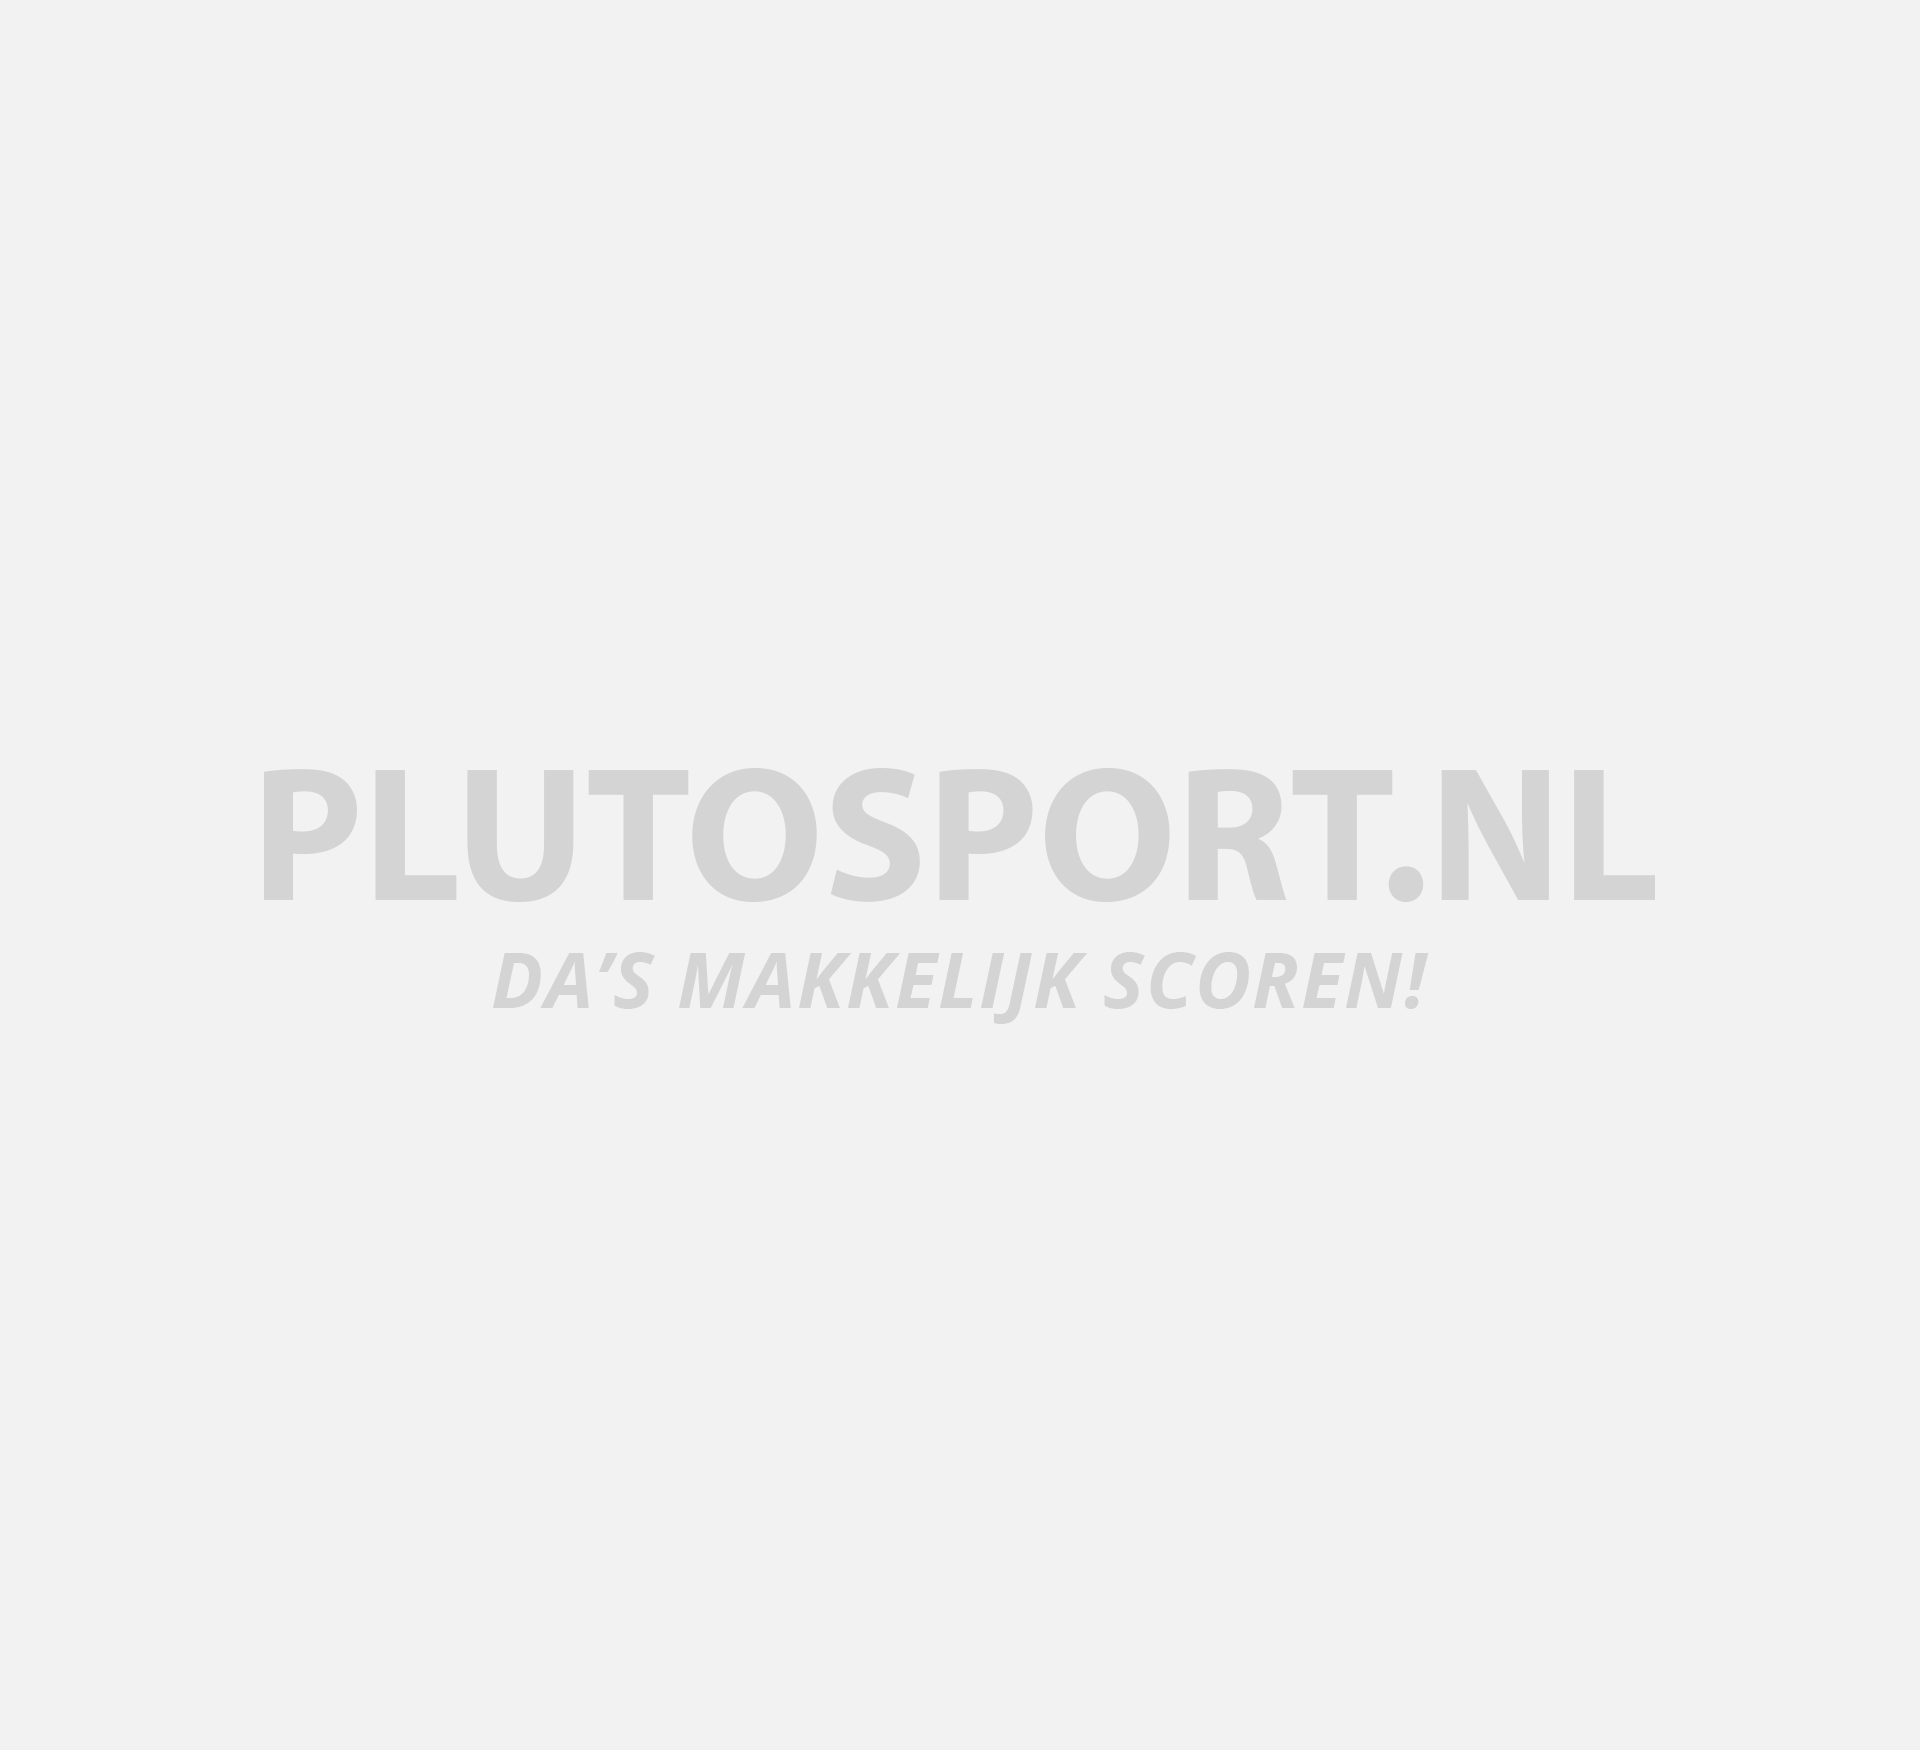 Adidas Uniforia League Voetbal EK 2020